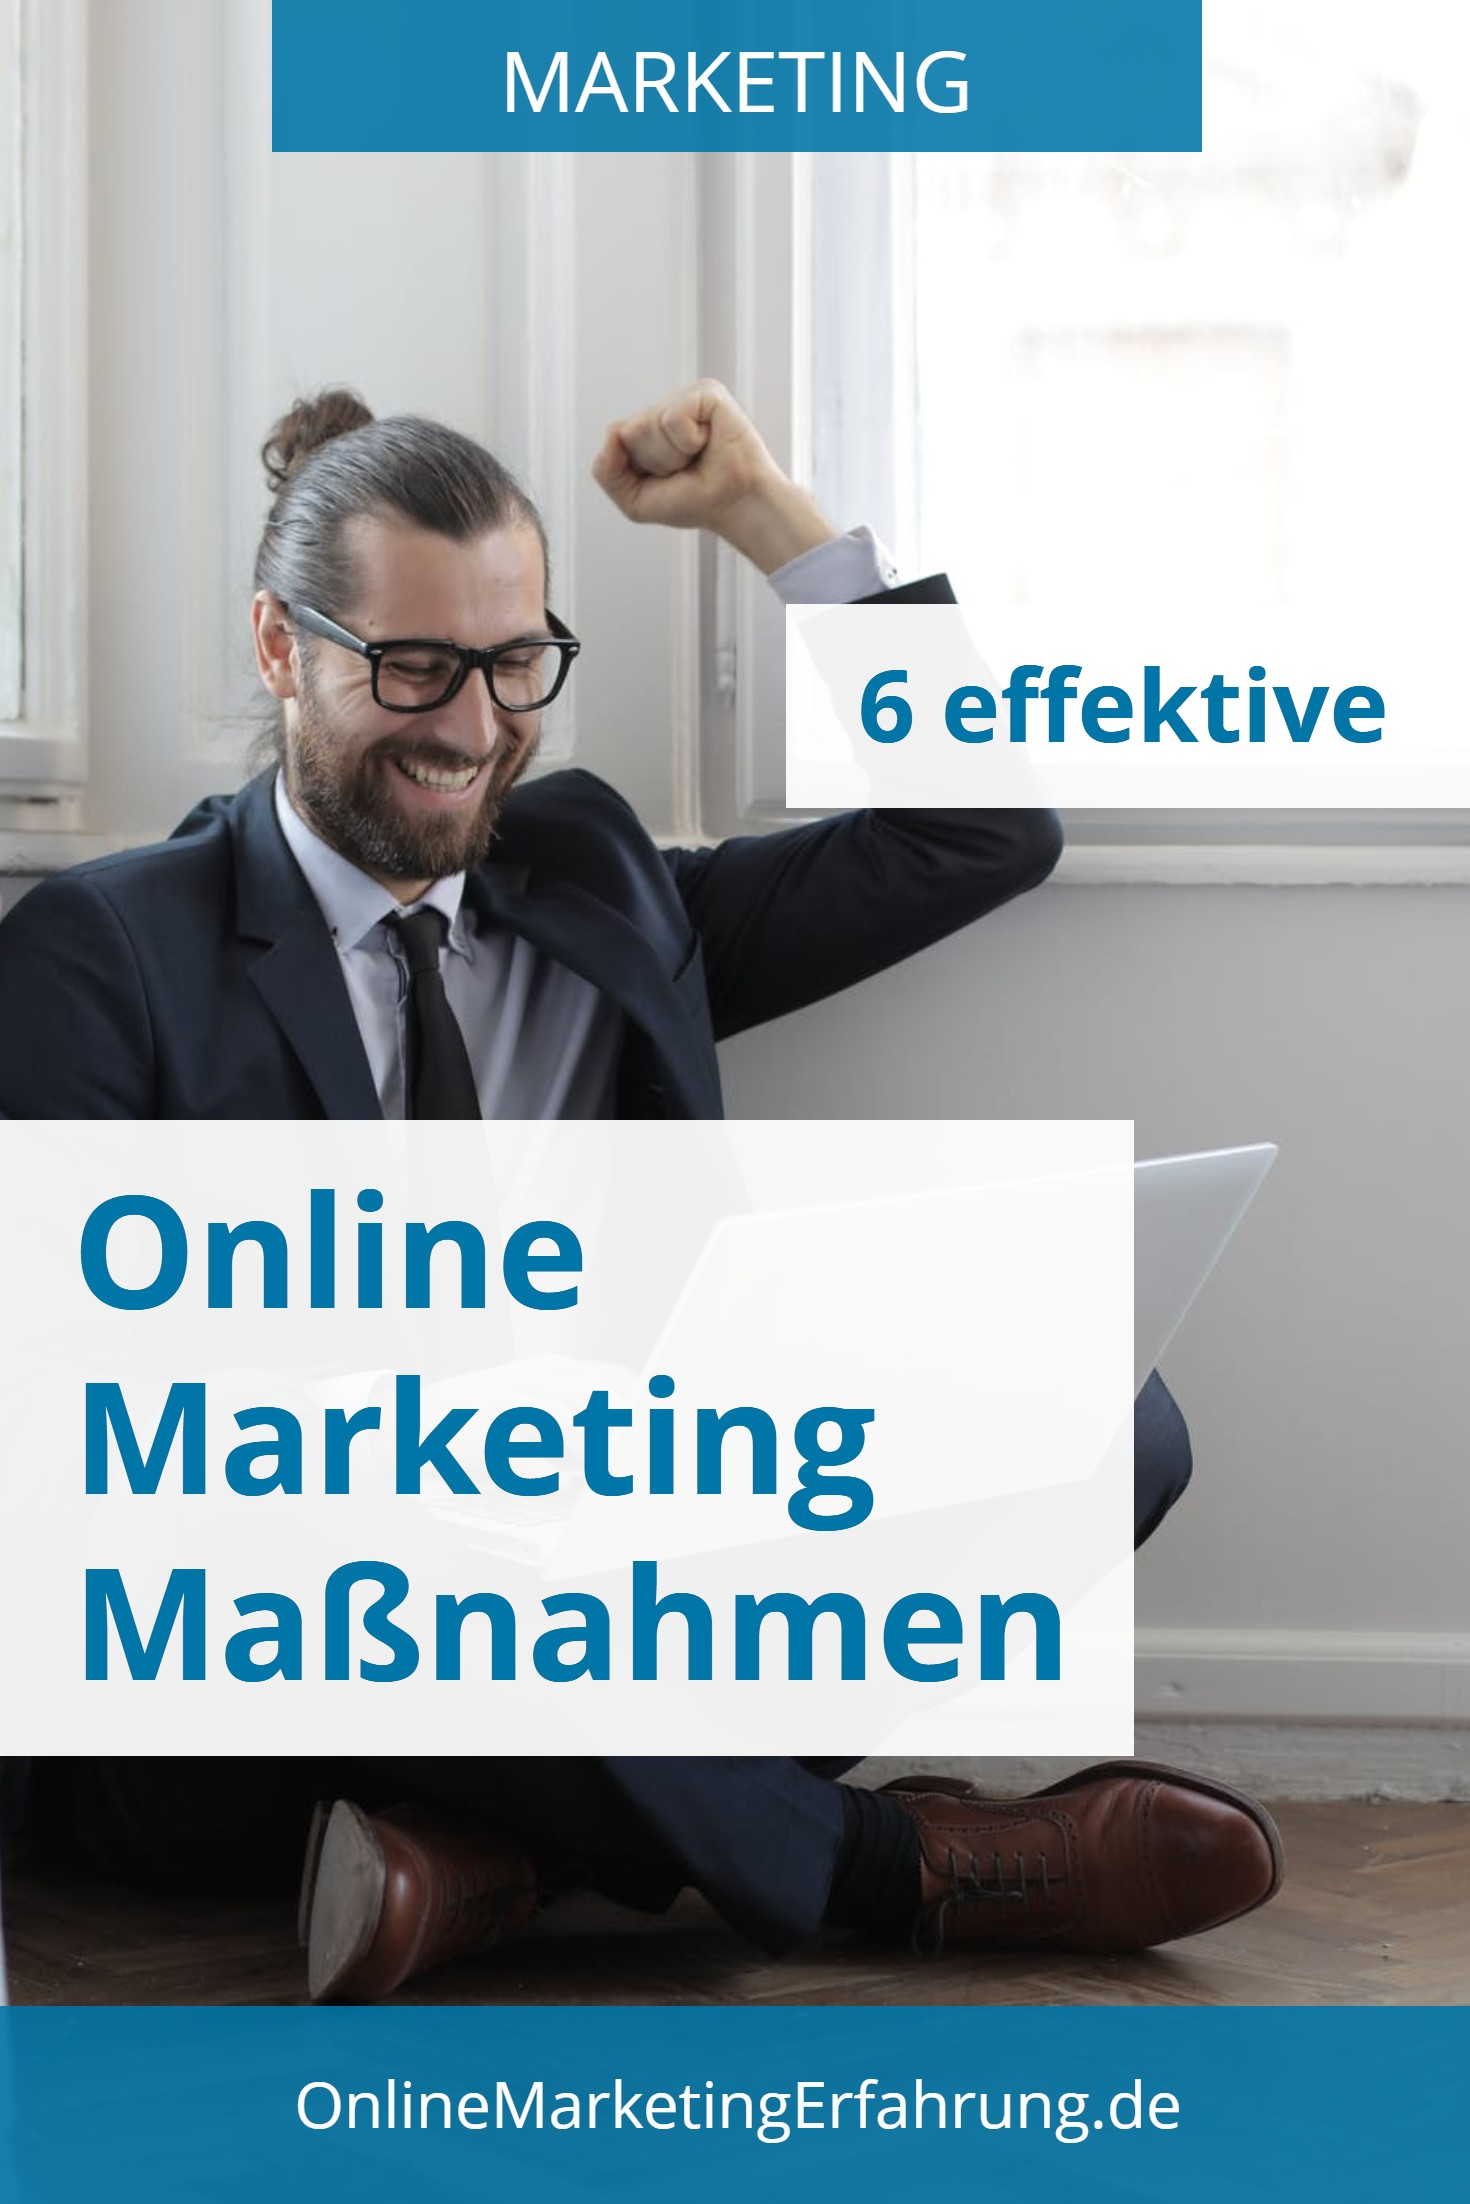 Online Marketing Maßnahmen